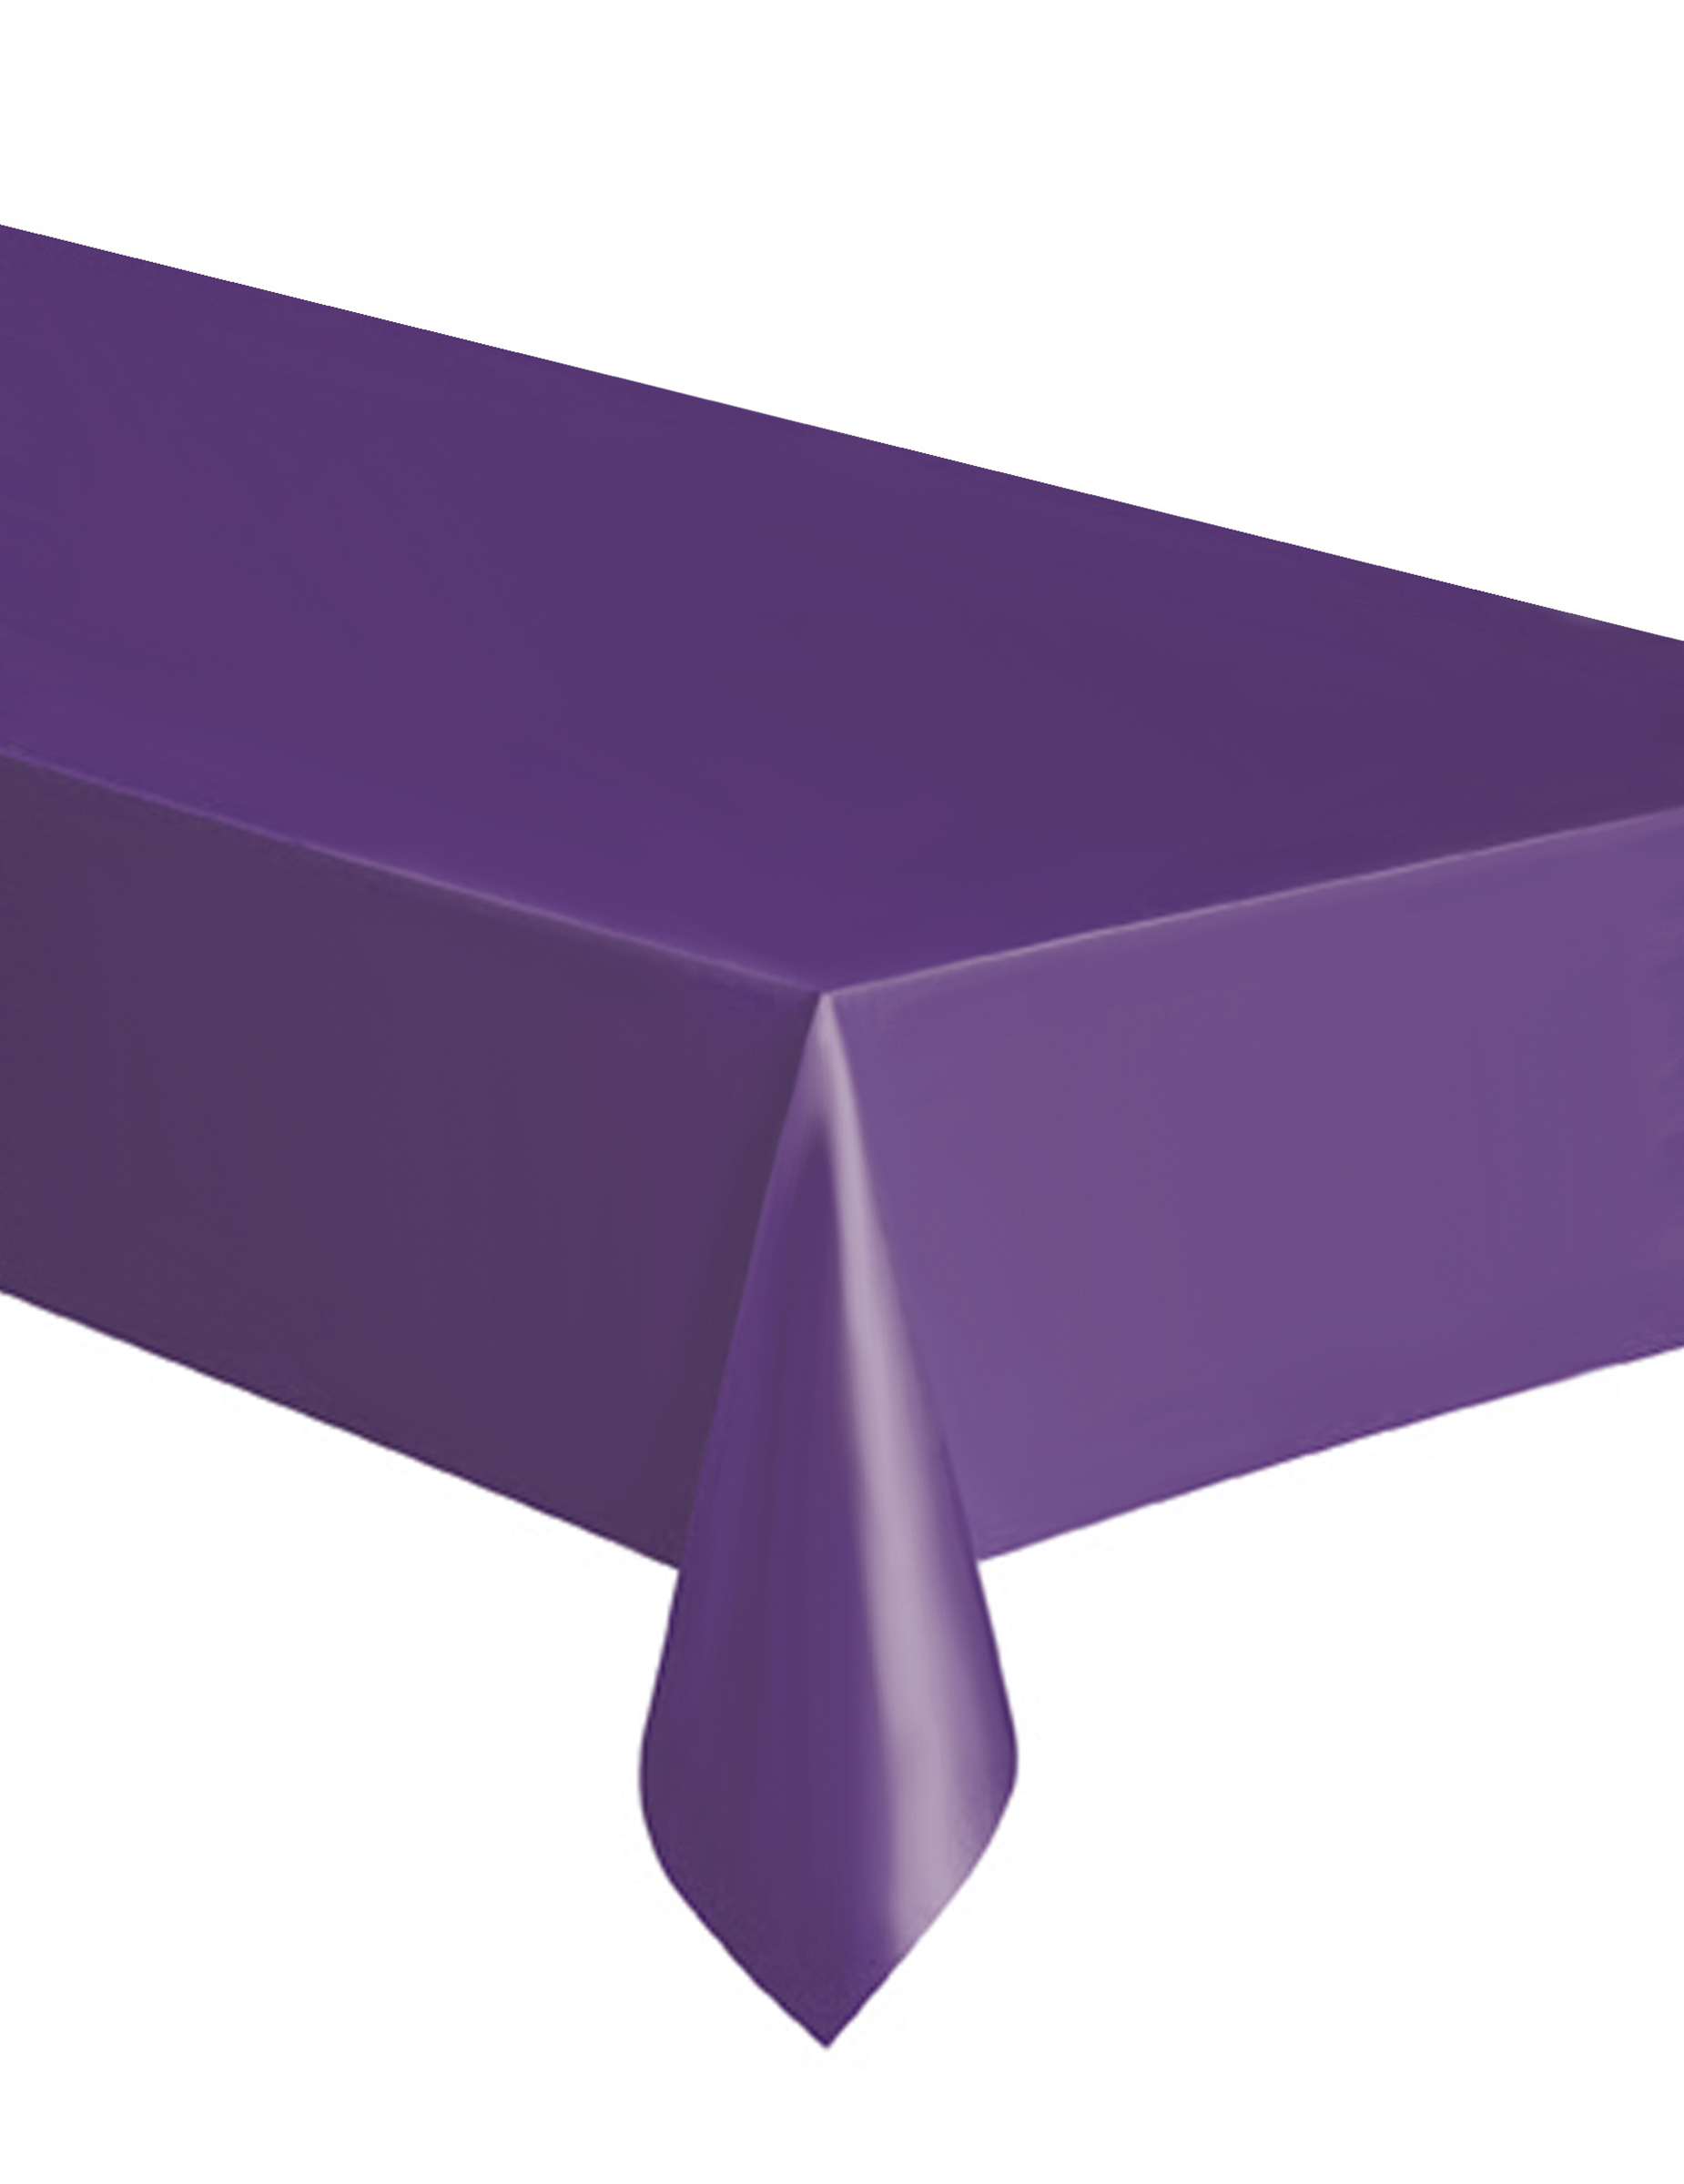 nappe rectangulaire violette en plastique. Black Bedroom Furniture Sets. Home Design Ideas